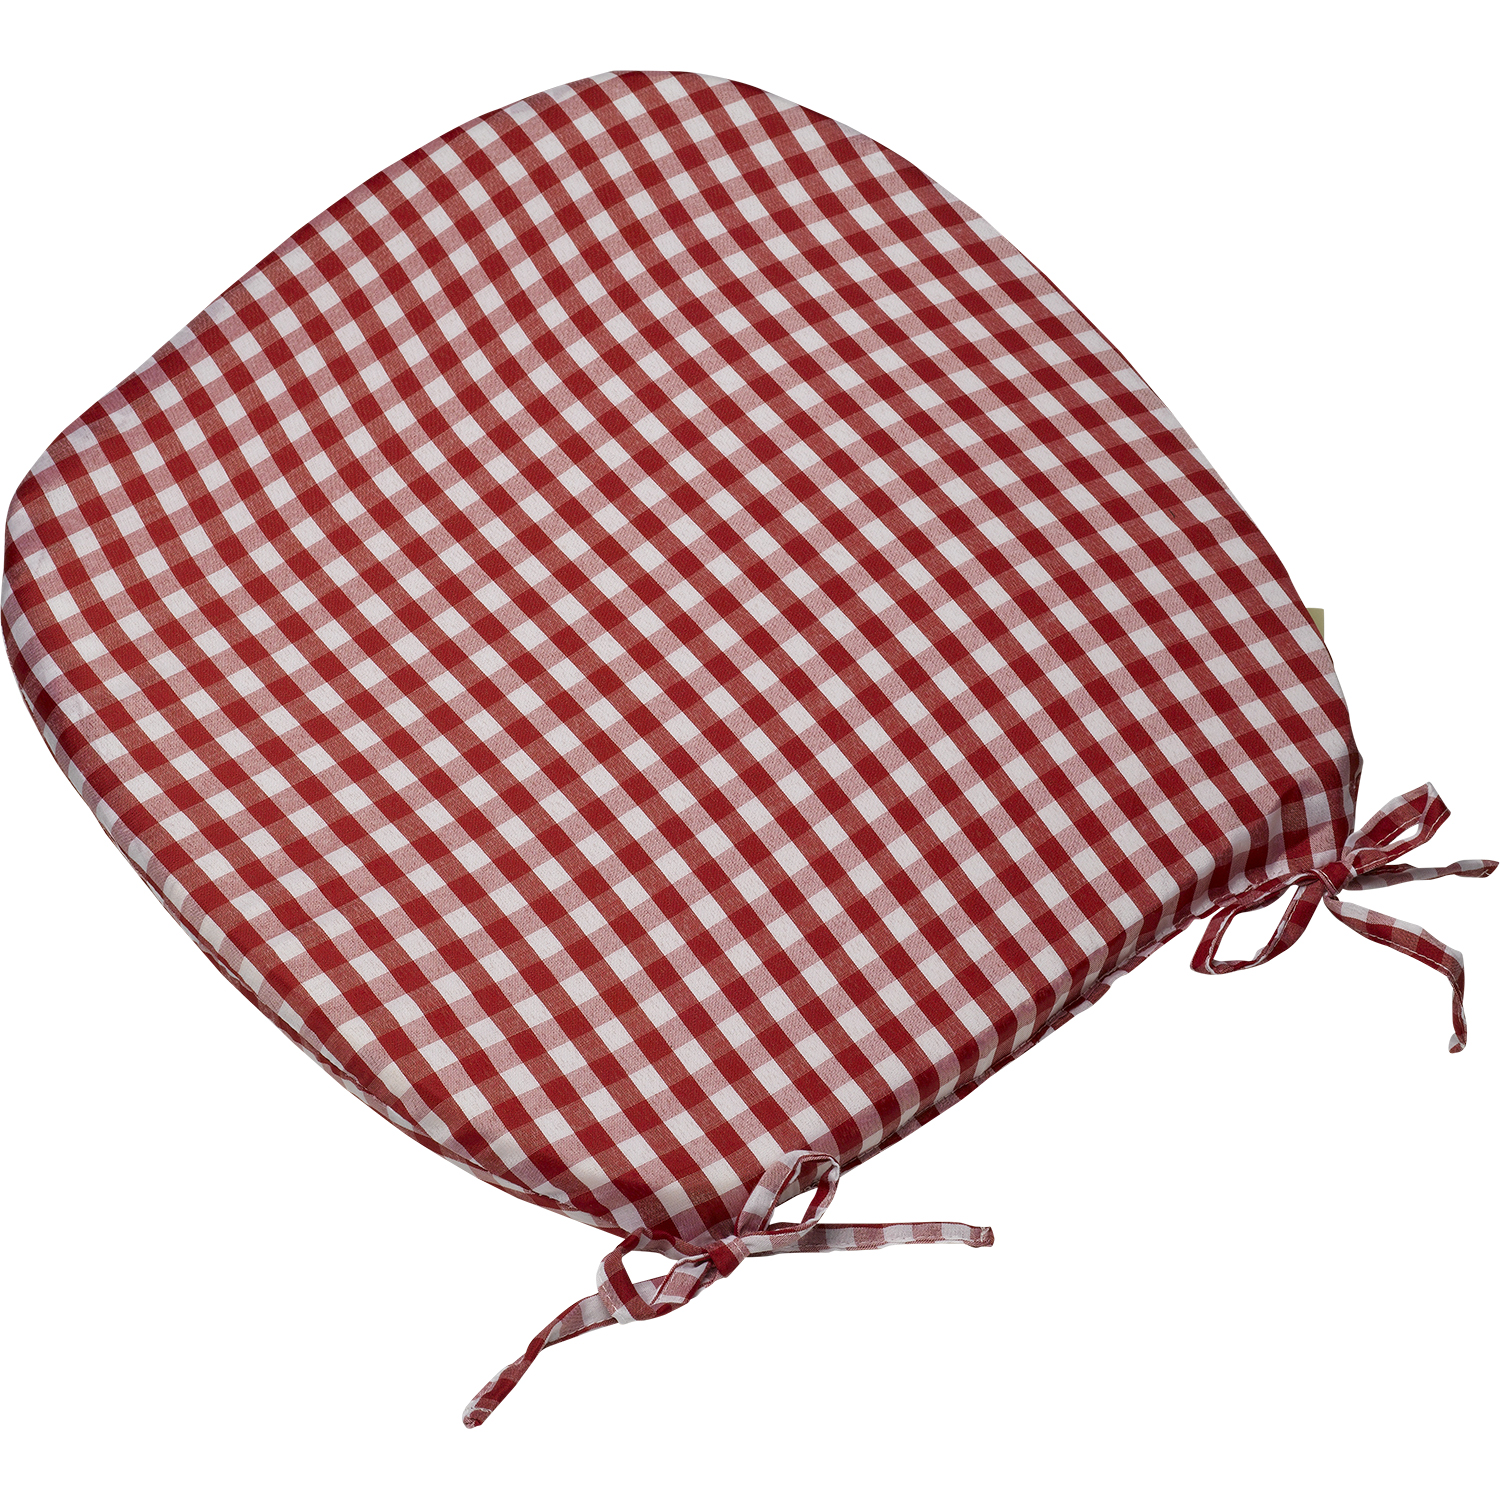 kitchen chair seat cushions with ties kitchen chair seat cushions Kitchen chair seat cushions with ties Gingham Check Tie On Seat Pad 16 X